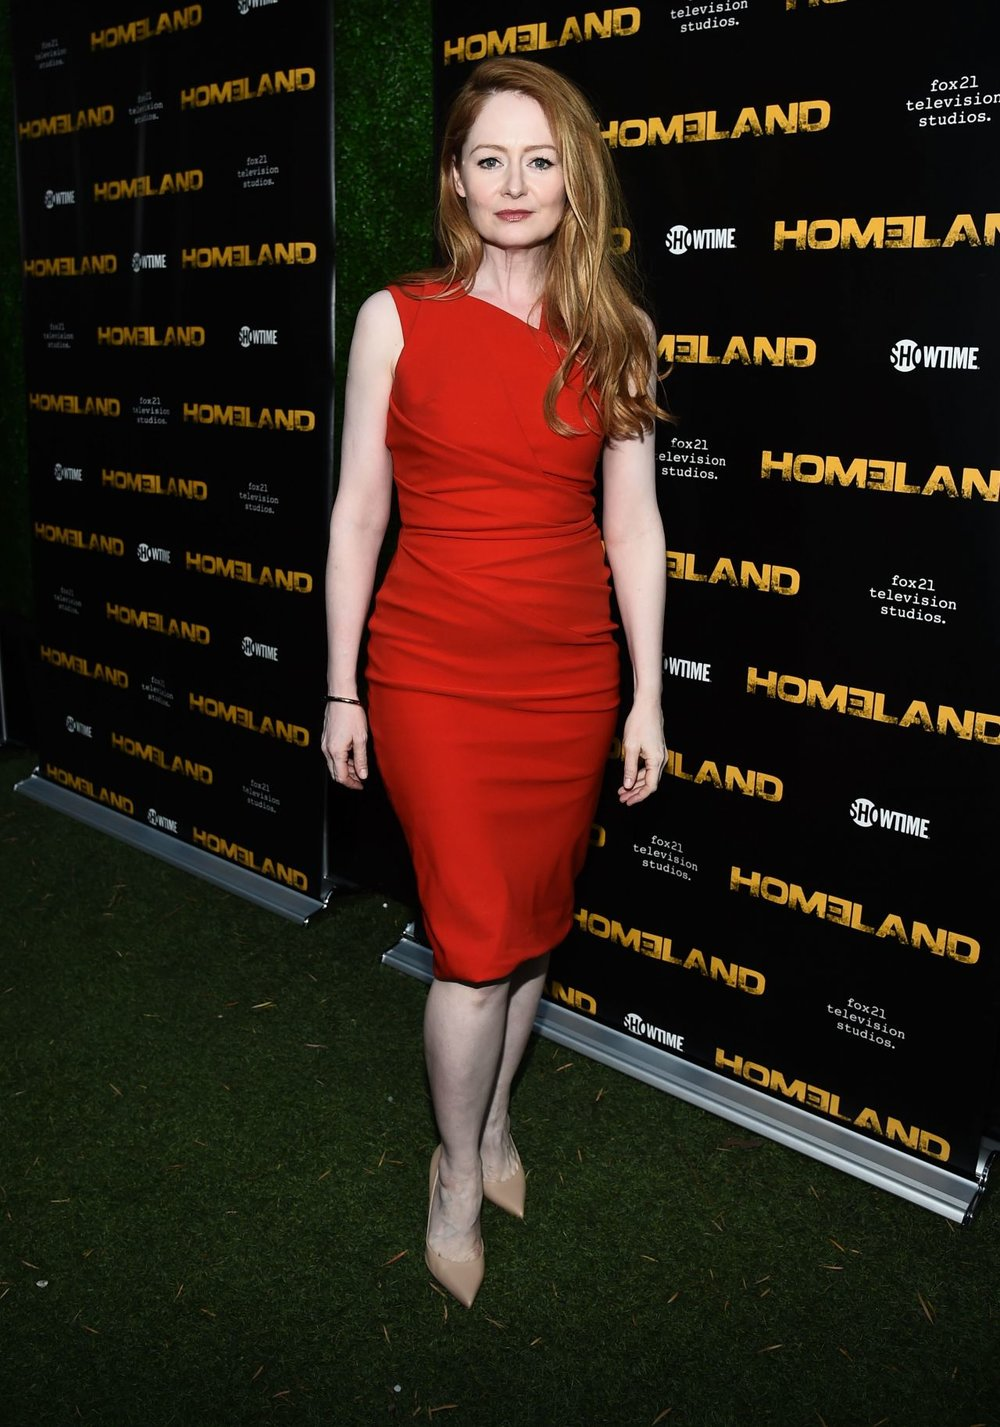 miranda-otto-emmy-for-your-consideration-event-for-homeland-in-los-angeles-5-25-2016-4.jpg